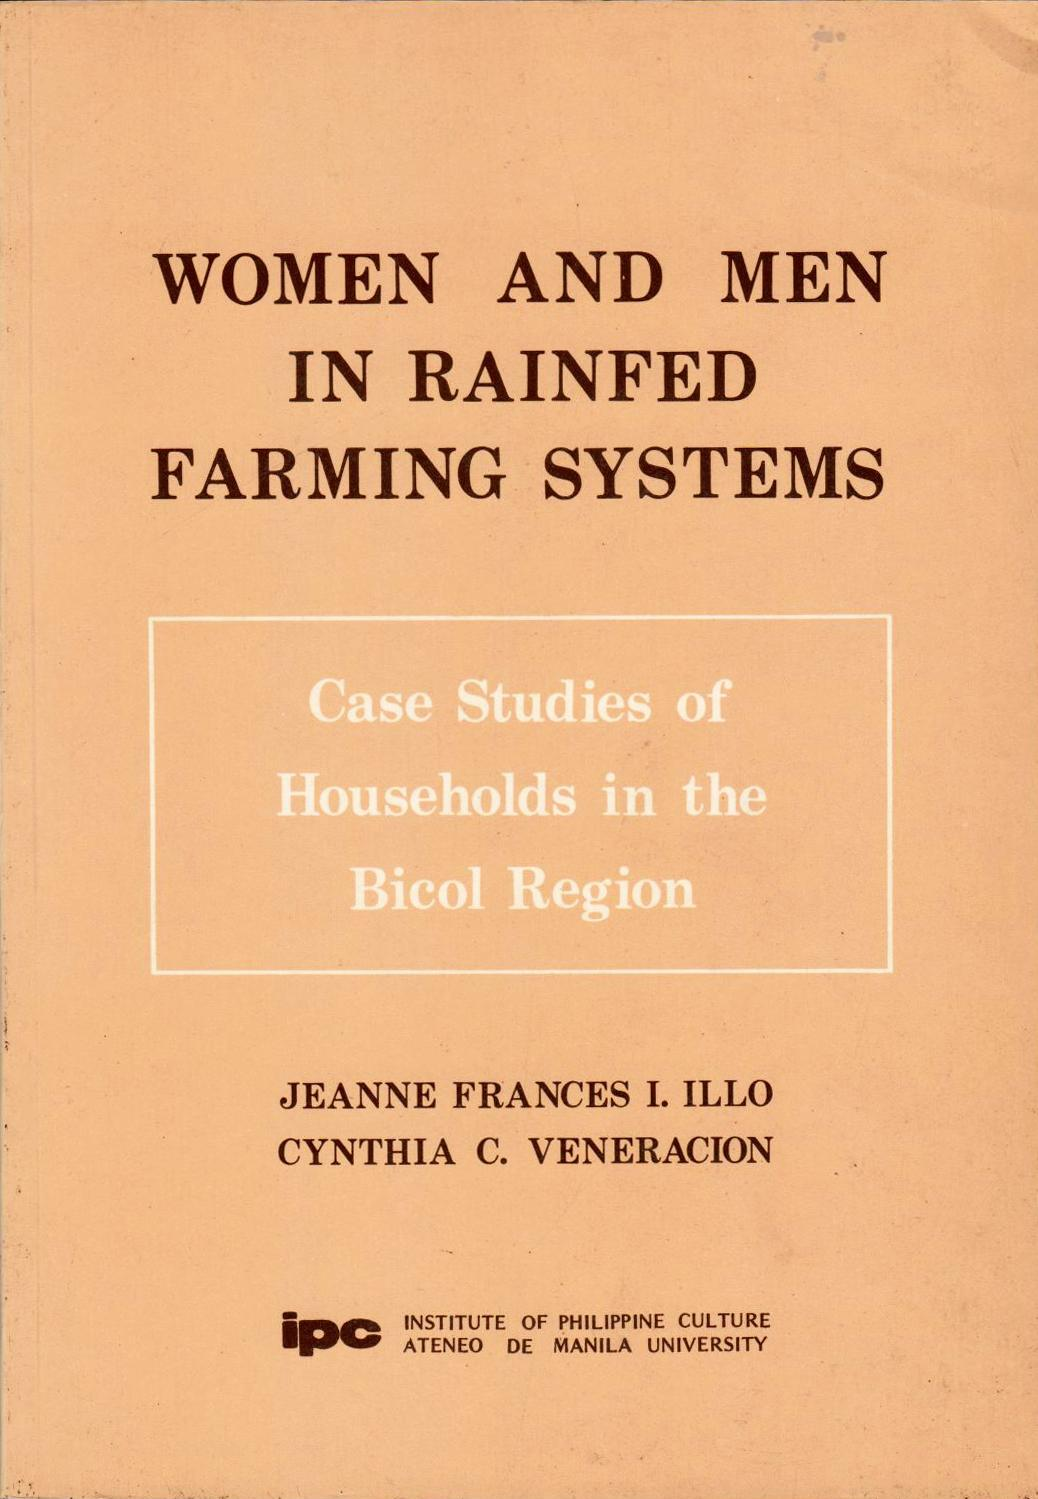 Women and Men in Rainfed Farming Systems: Case Studies of Households